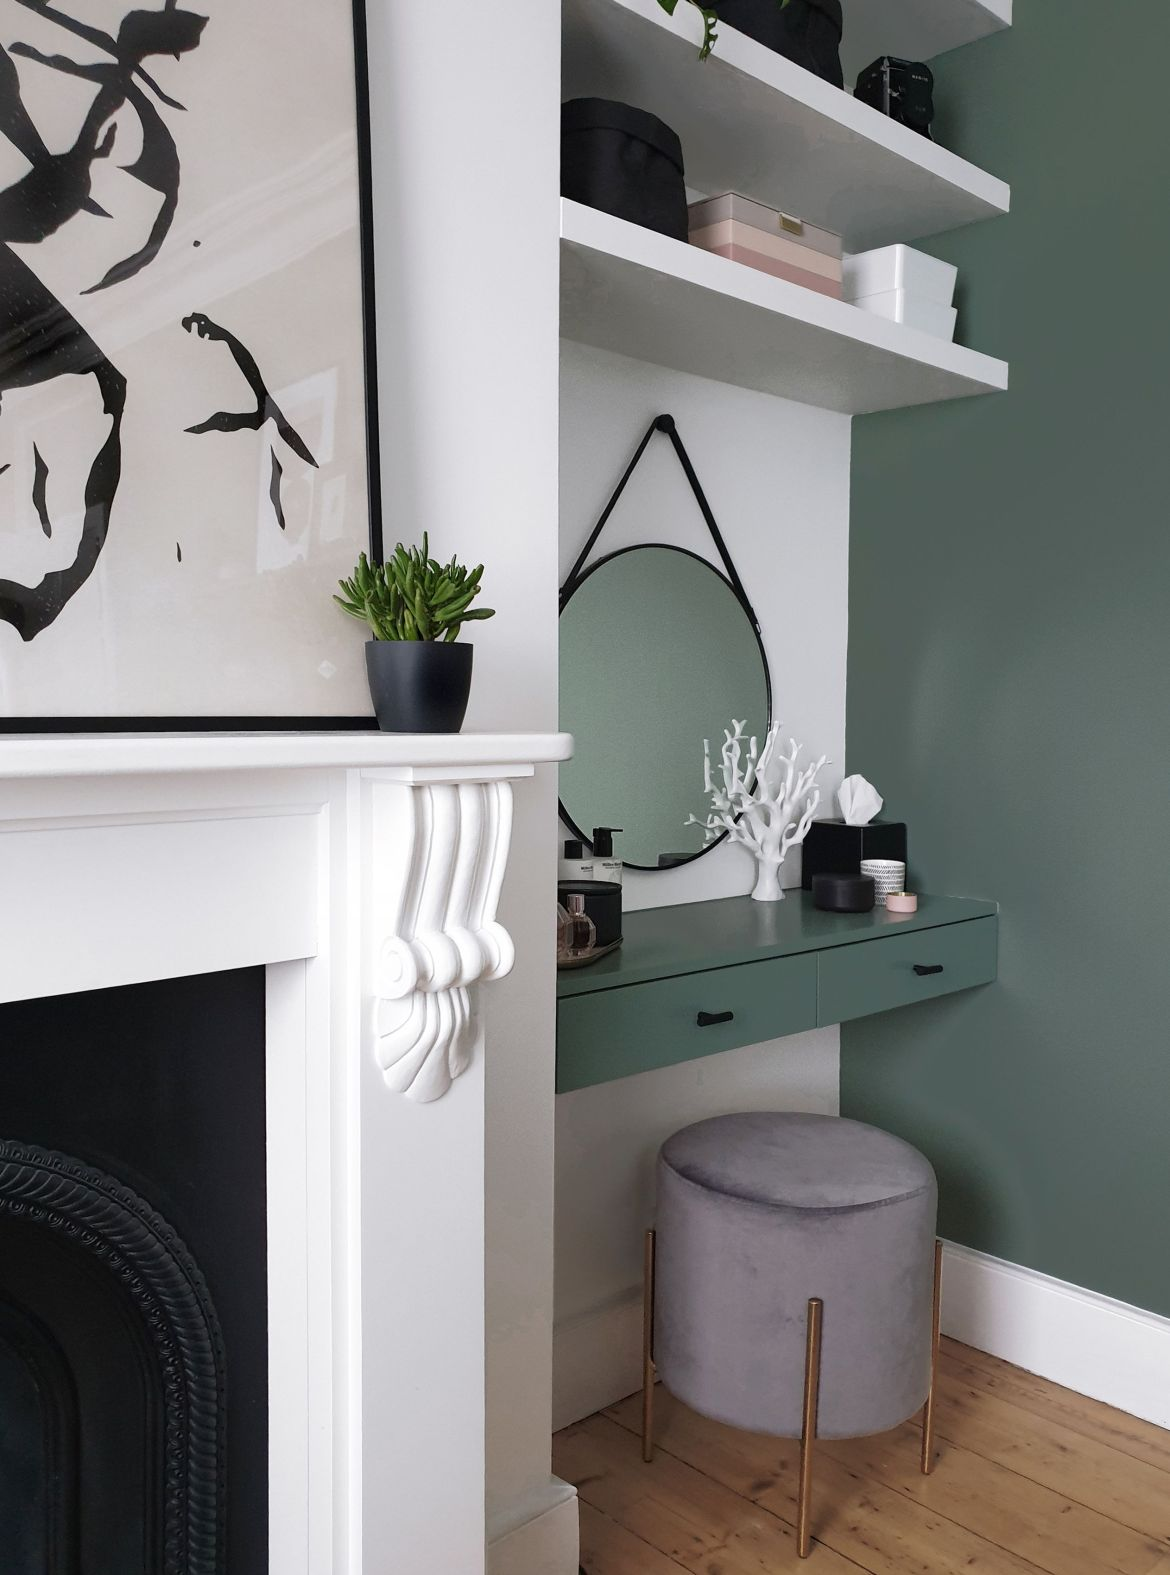 dressing table alcove ideas, baltimore low stool, velvet upholstered, charcoal greycult furniture